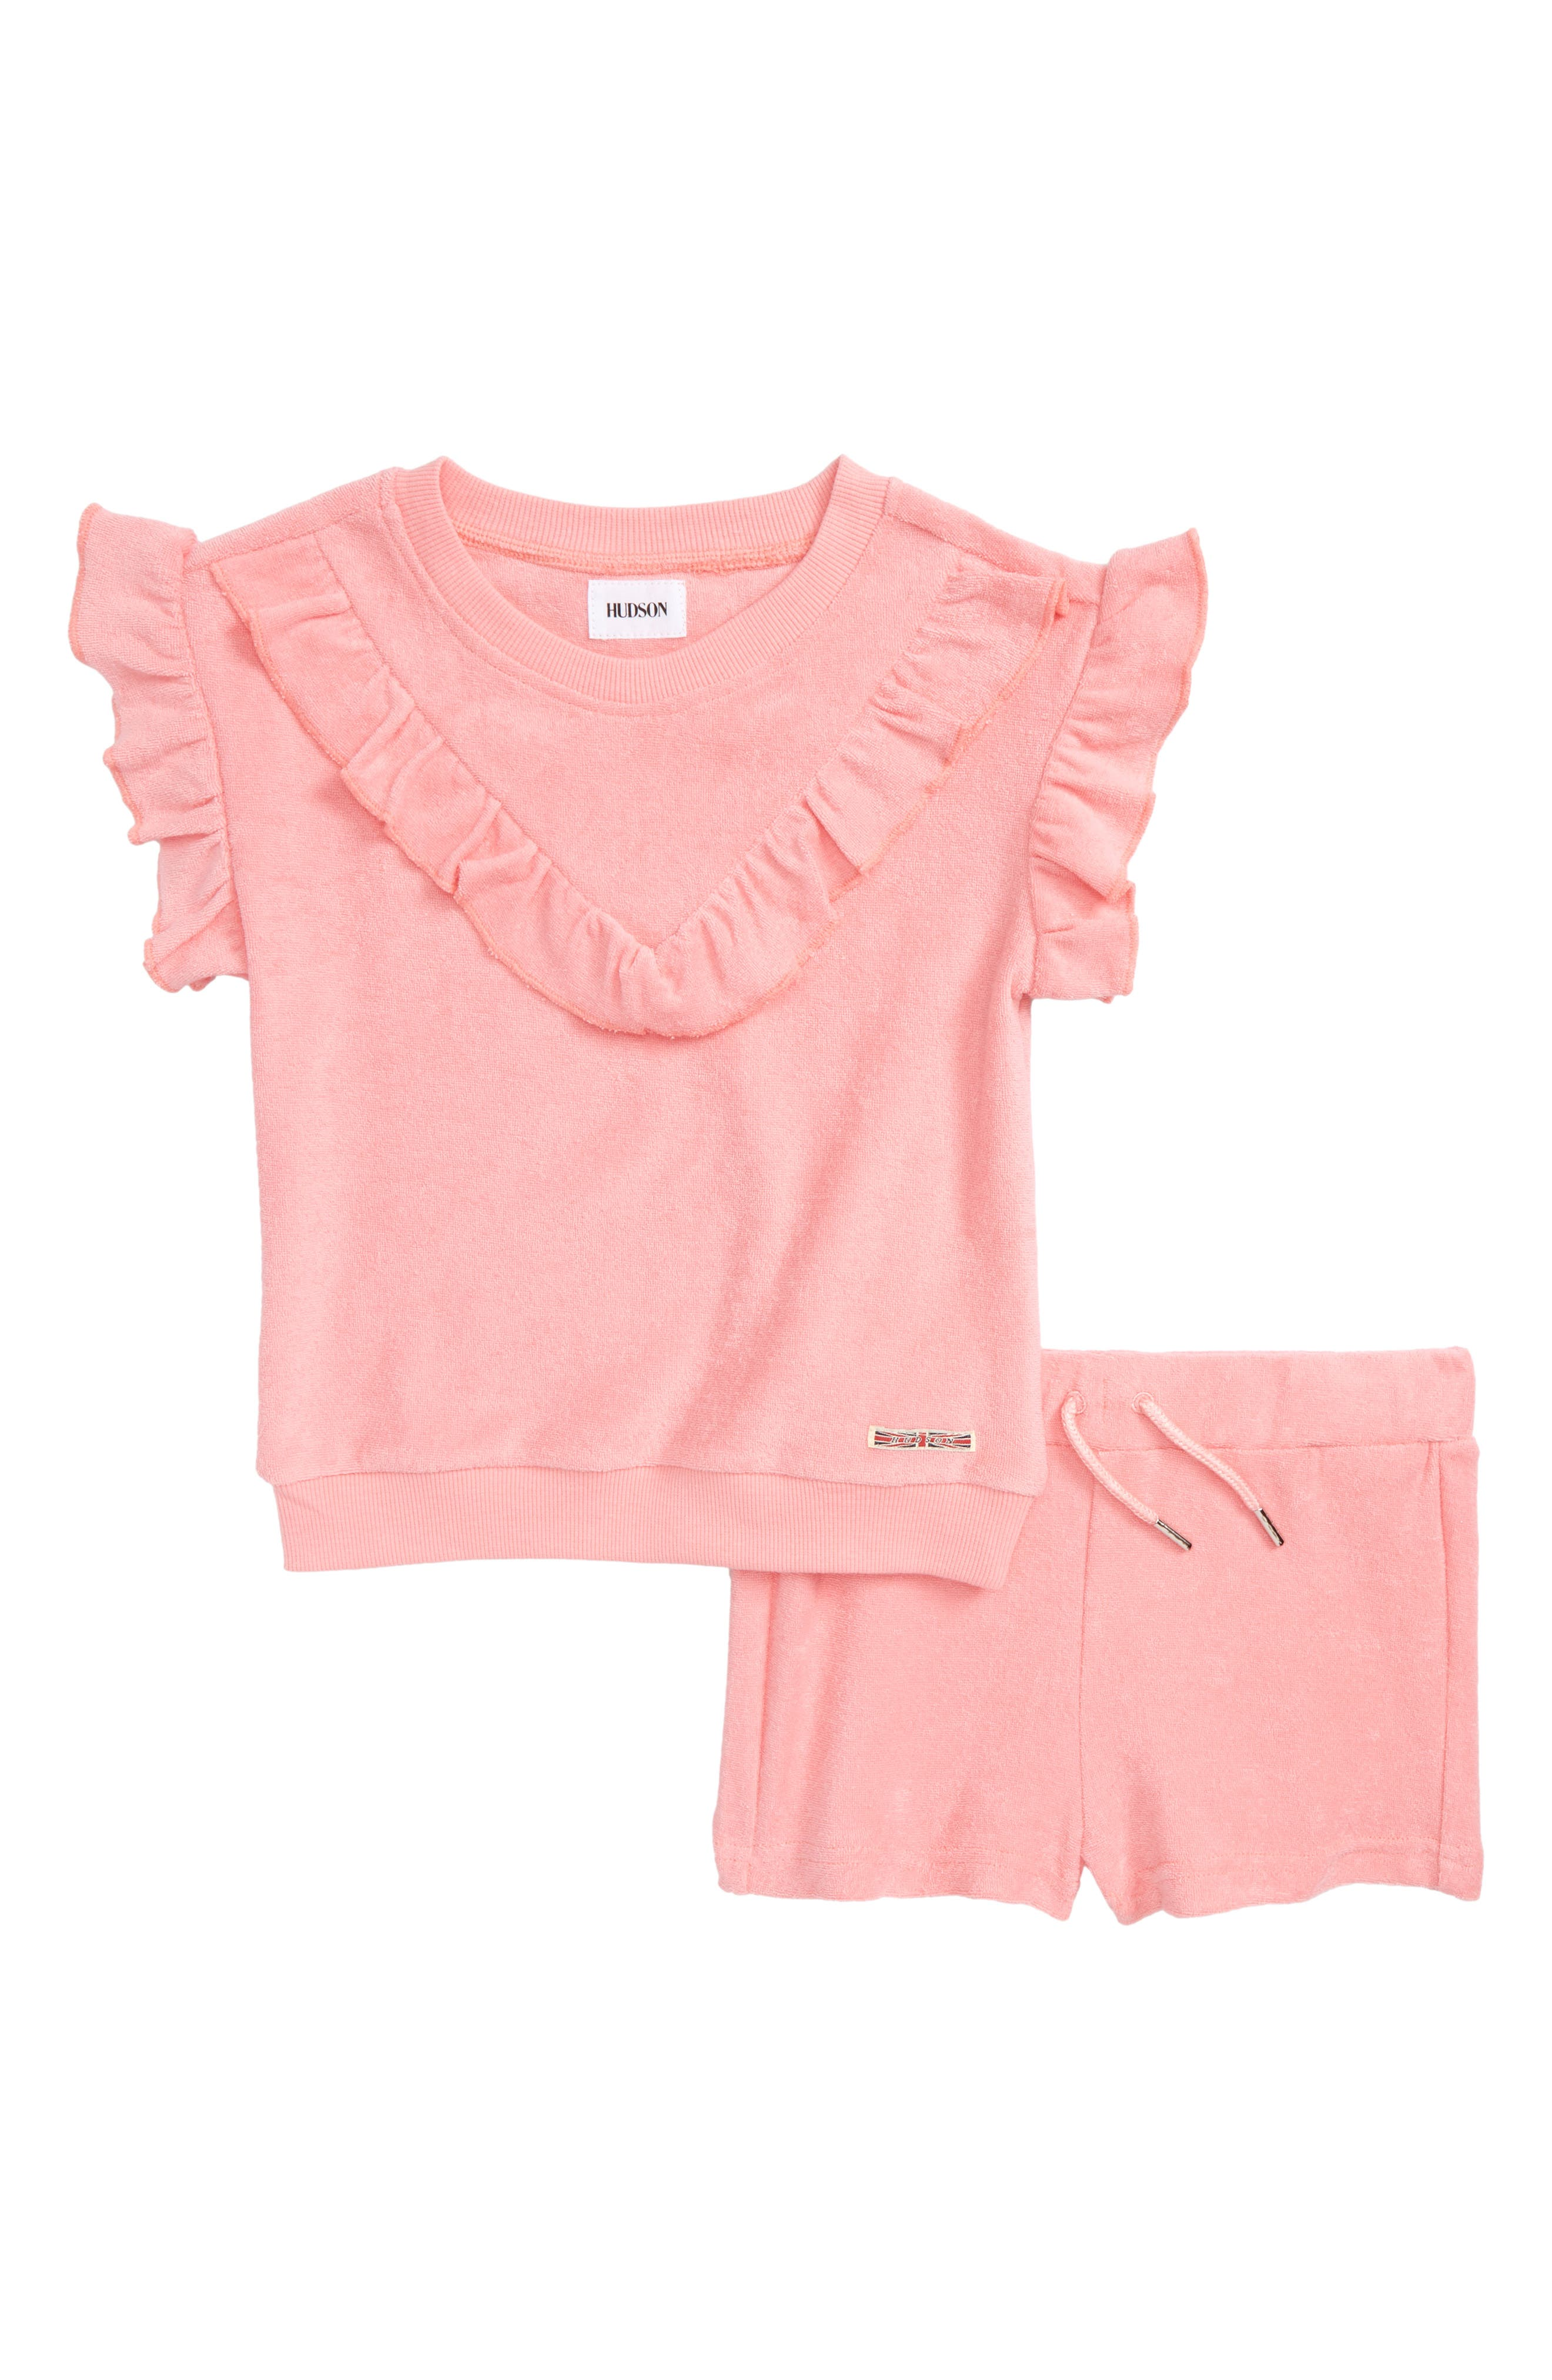 French Terry Ruffle Top & Shorts Set,                         Main,                         color, Coral